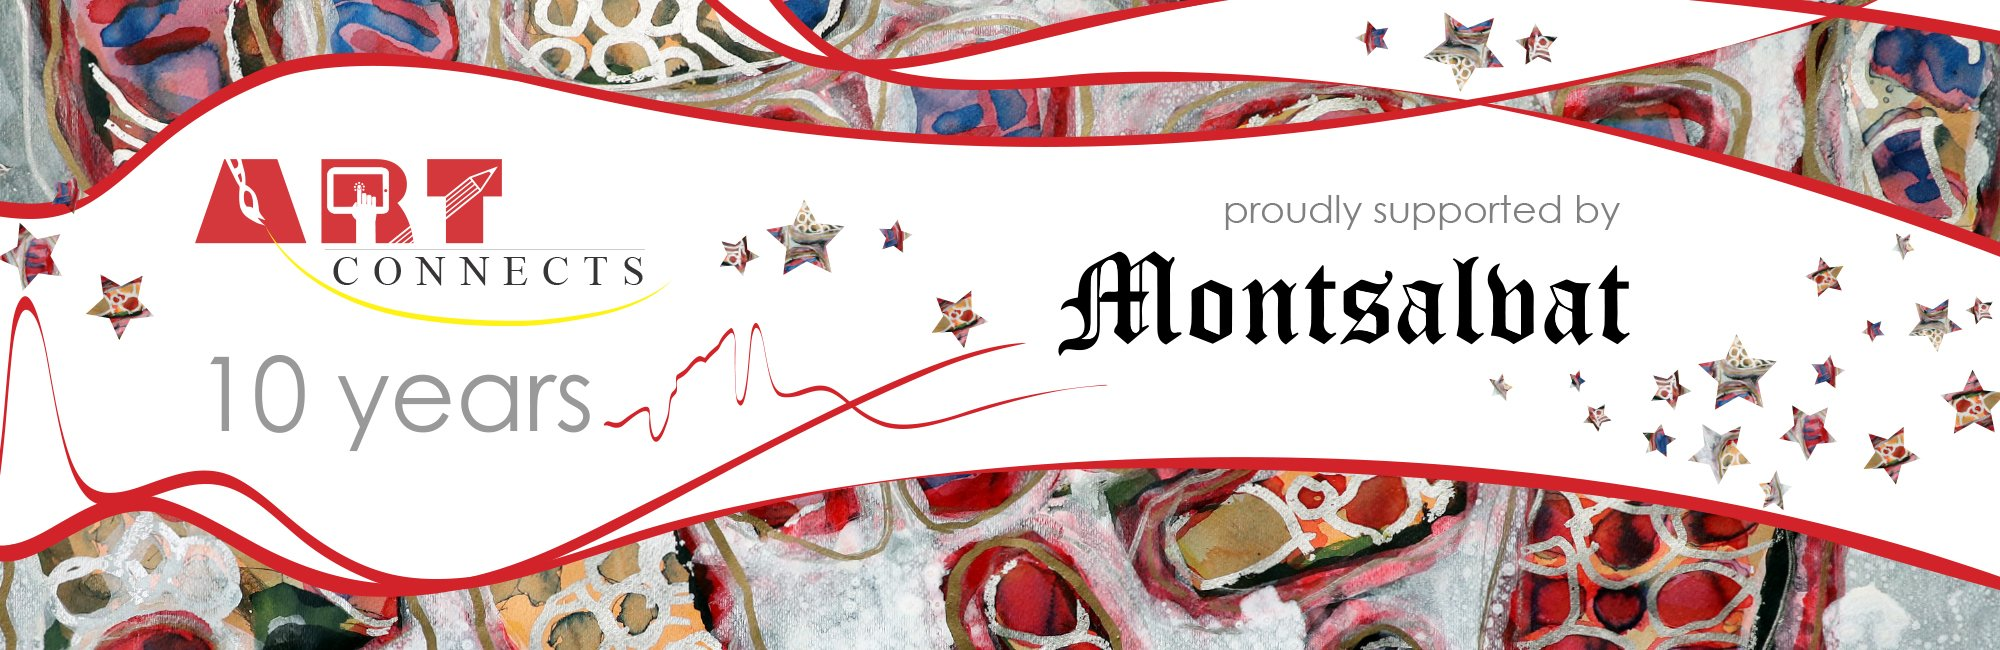 Art Connects tenth anniversary banner supported by Montsalvat